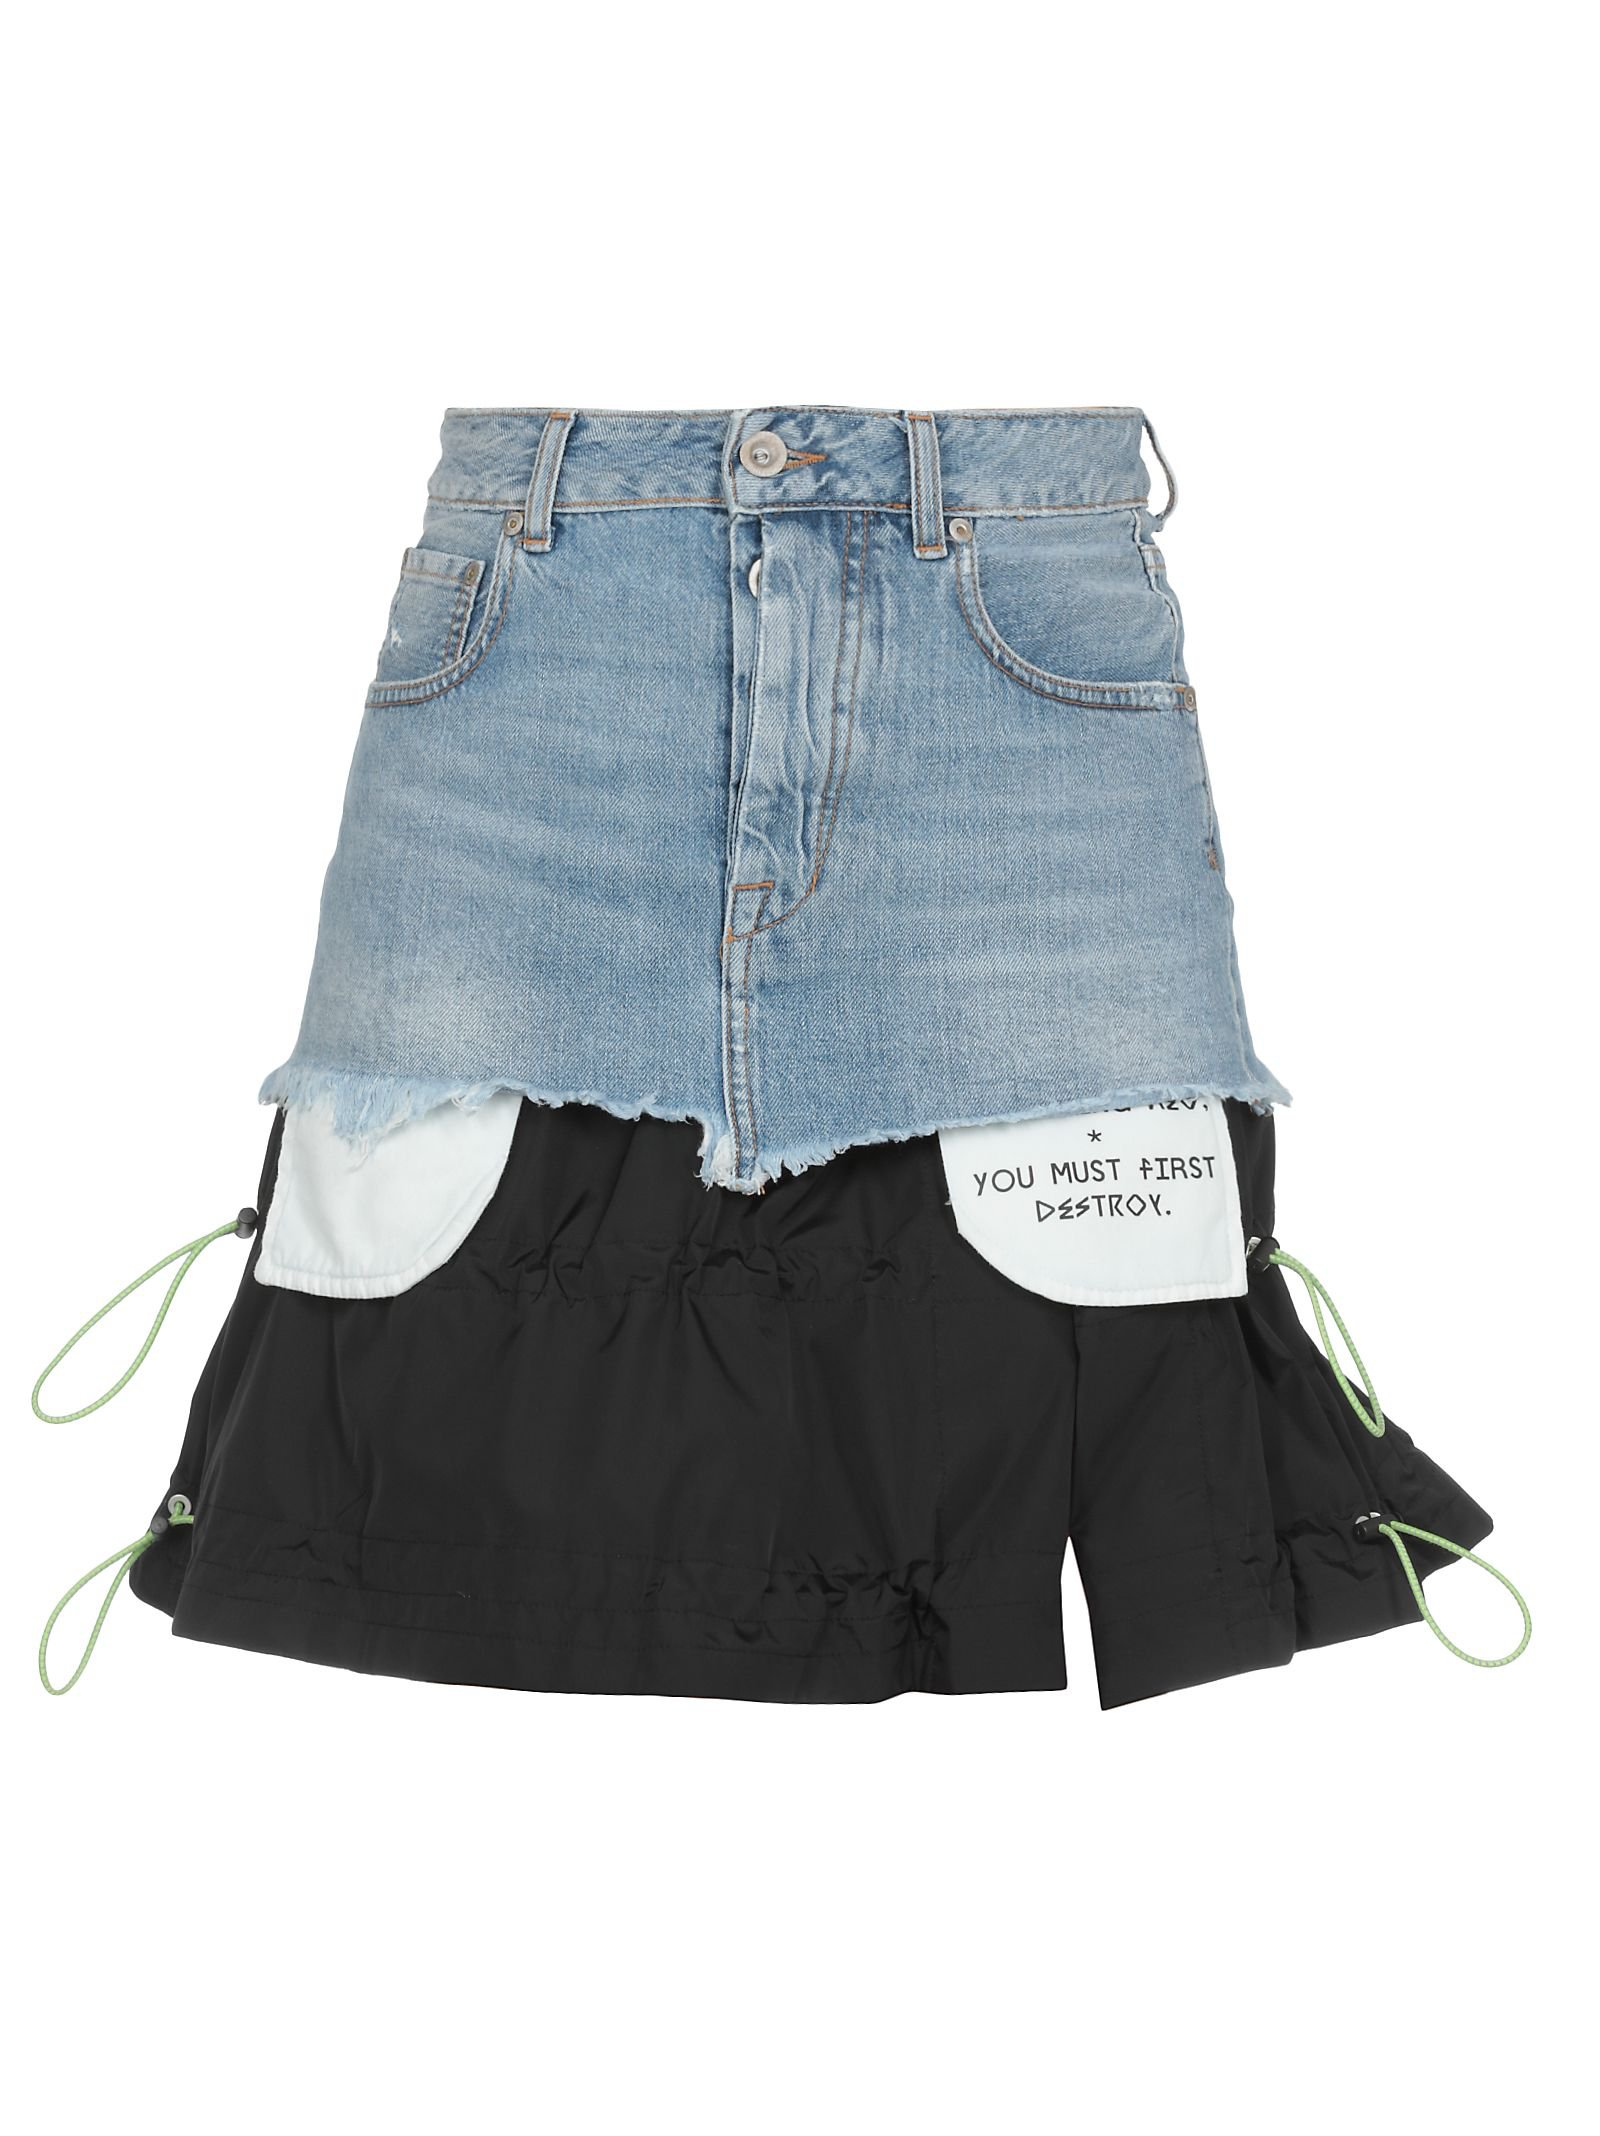 Ben Taverniti Unravel Project Cotton Jeans And Tech Fabric Skirt